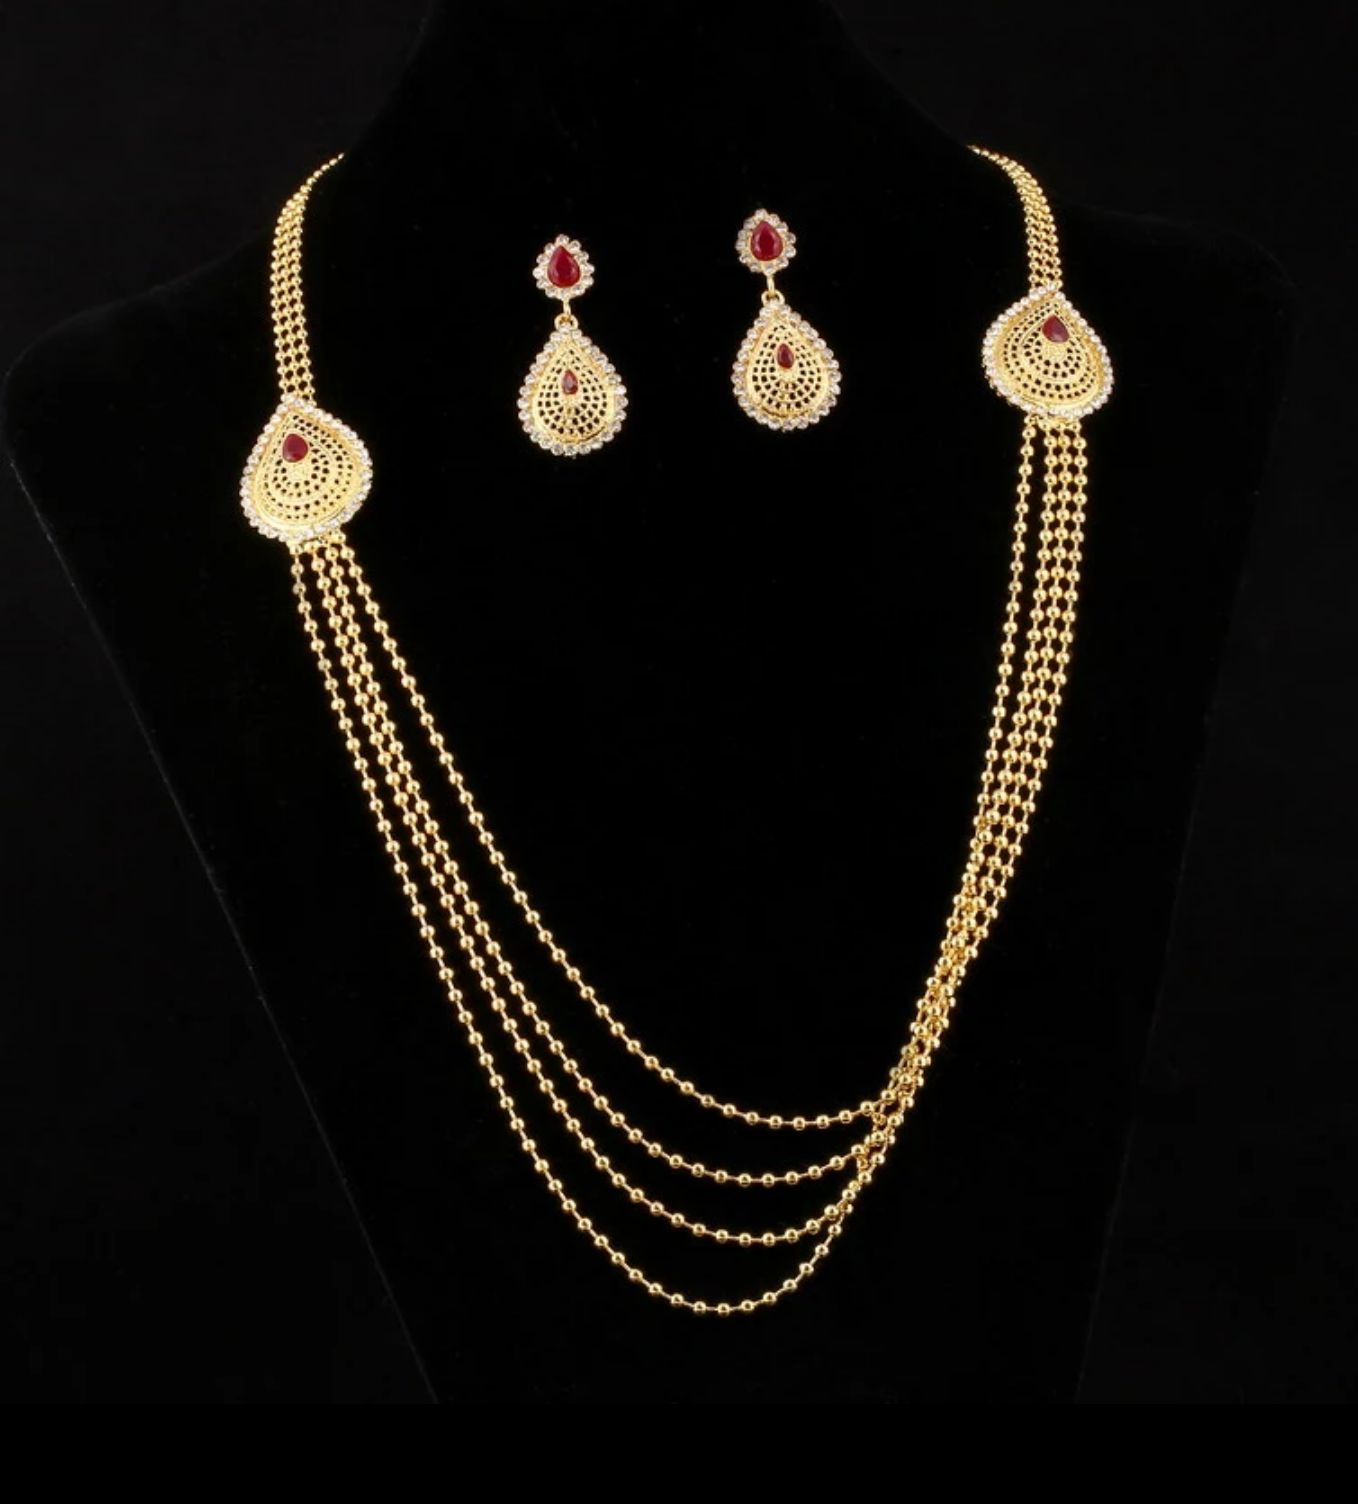 Vintage look indian tassel earrings maxi necklace for women white